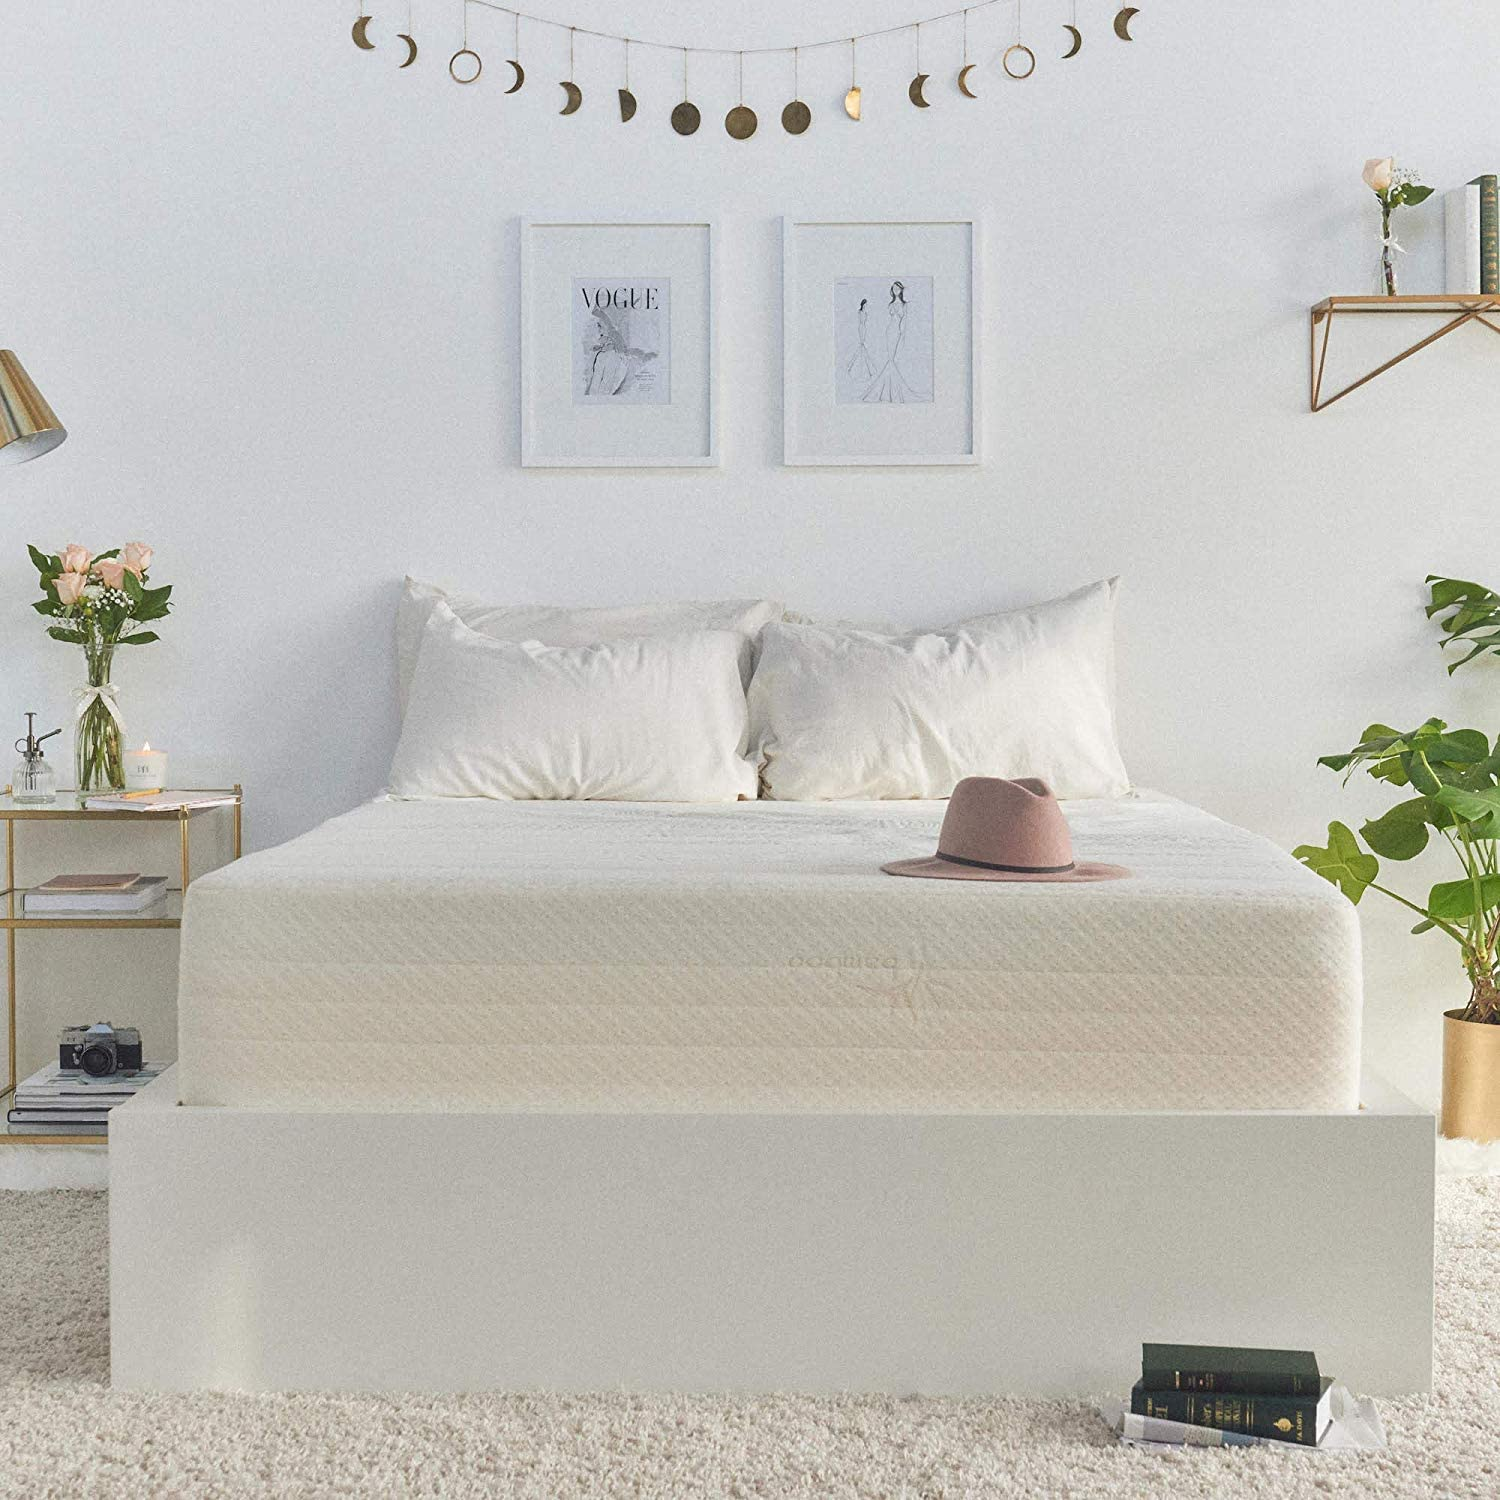 Brentwood Home Cypress Cooling Gel Memory Foam, Non-Toxic, Made in California Mattress, Full, Beige